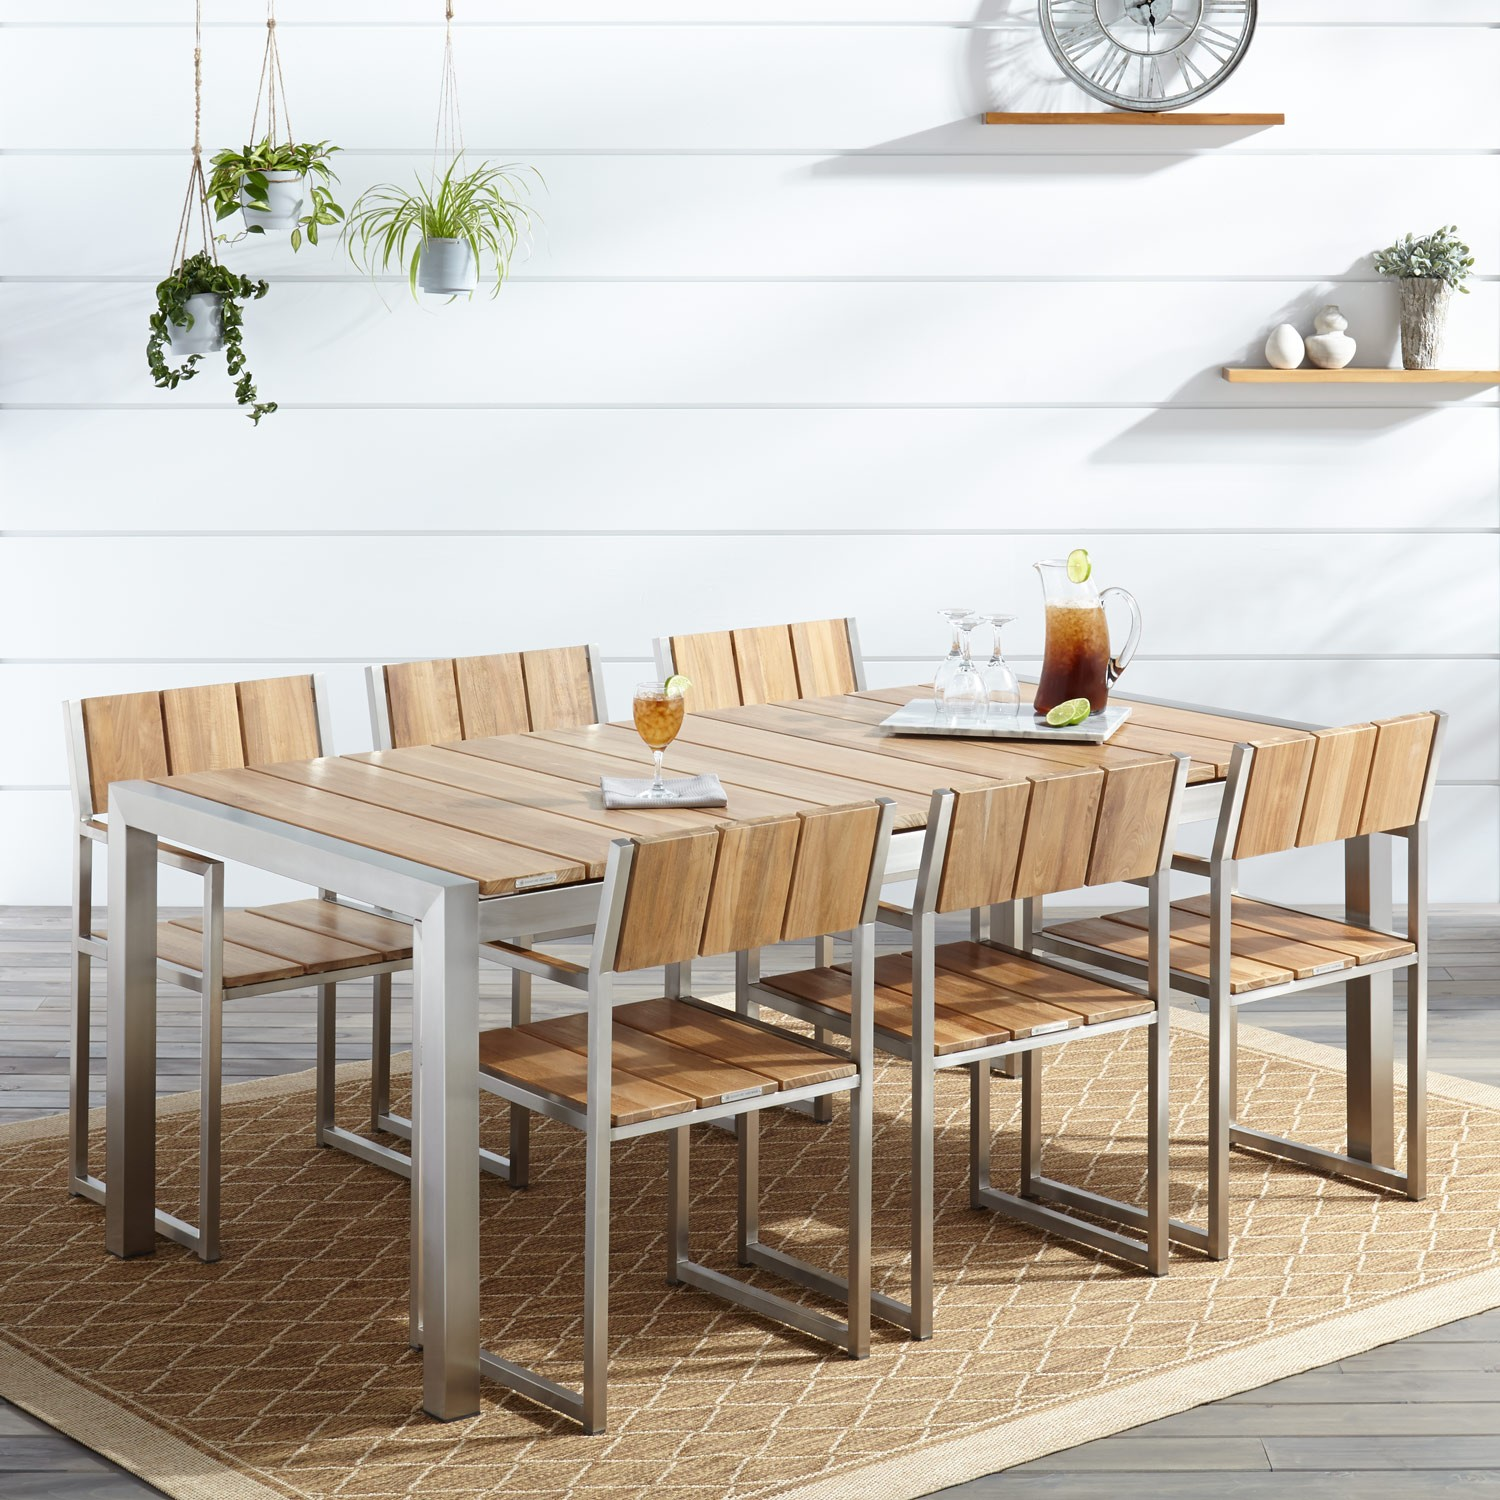 Macon 7-Piece Rectangular Teak Outdoor Dining Table Set - Natural ...